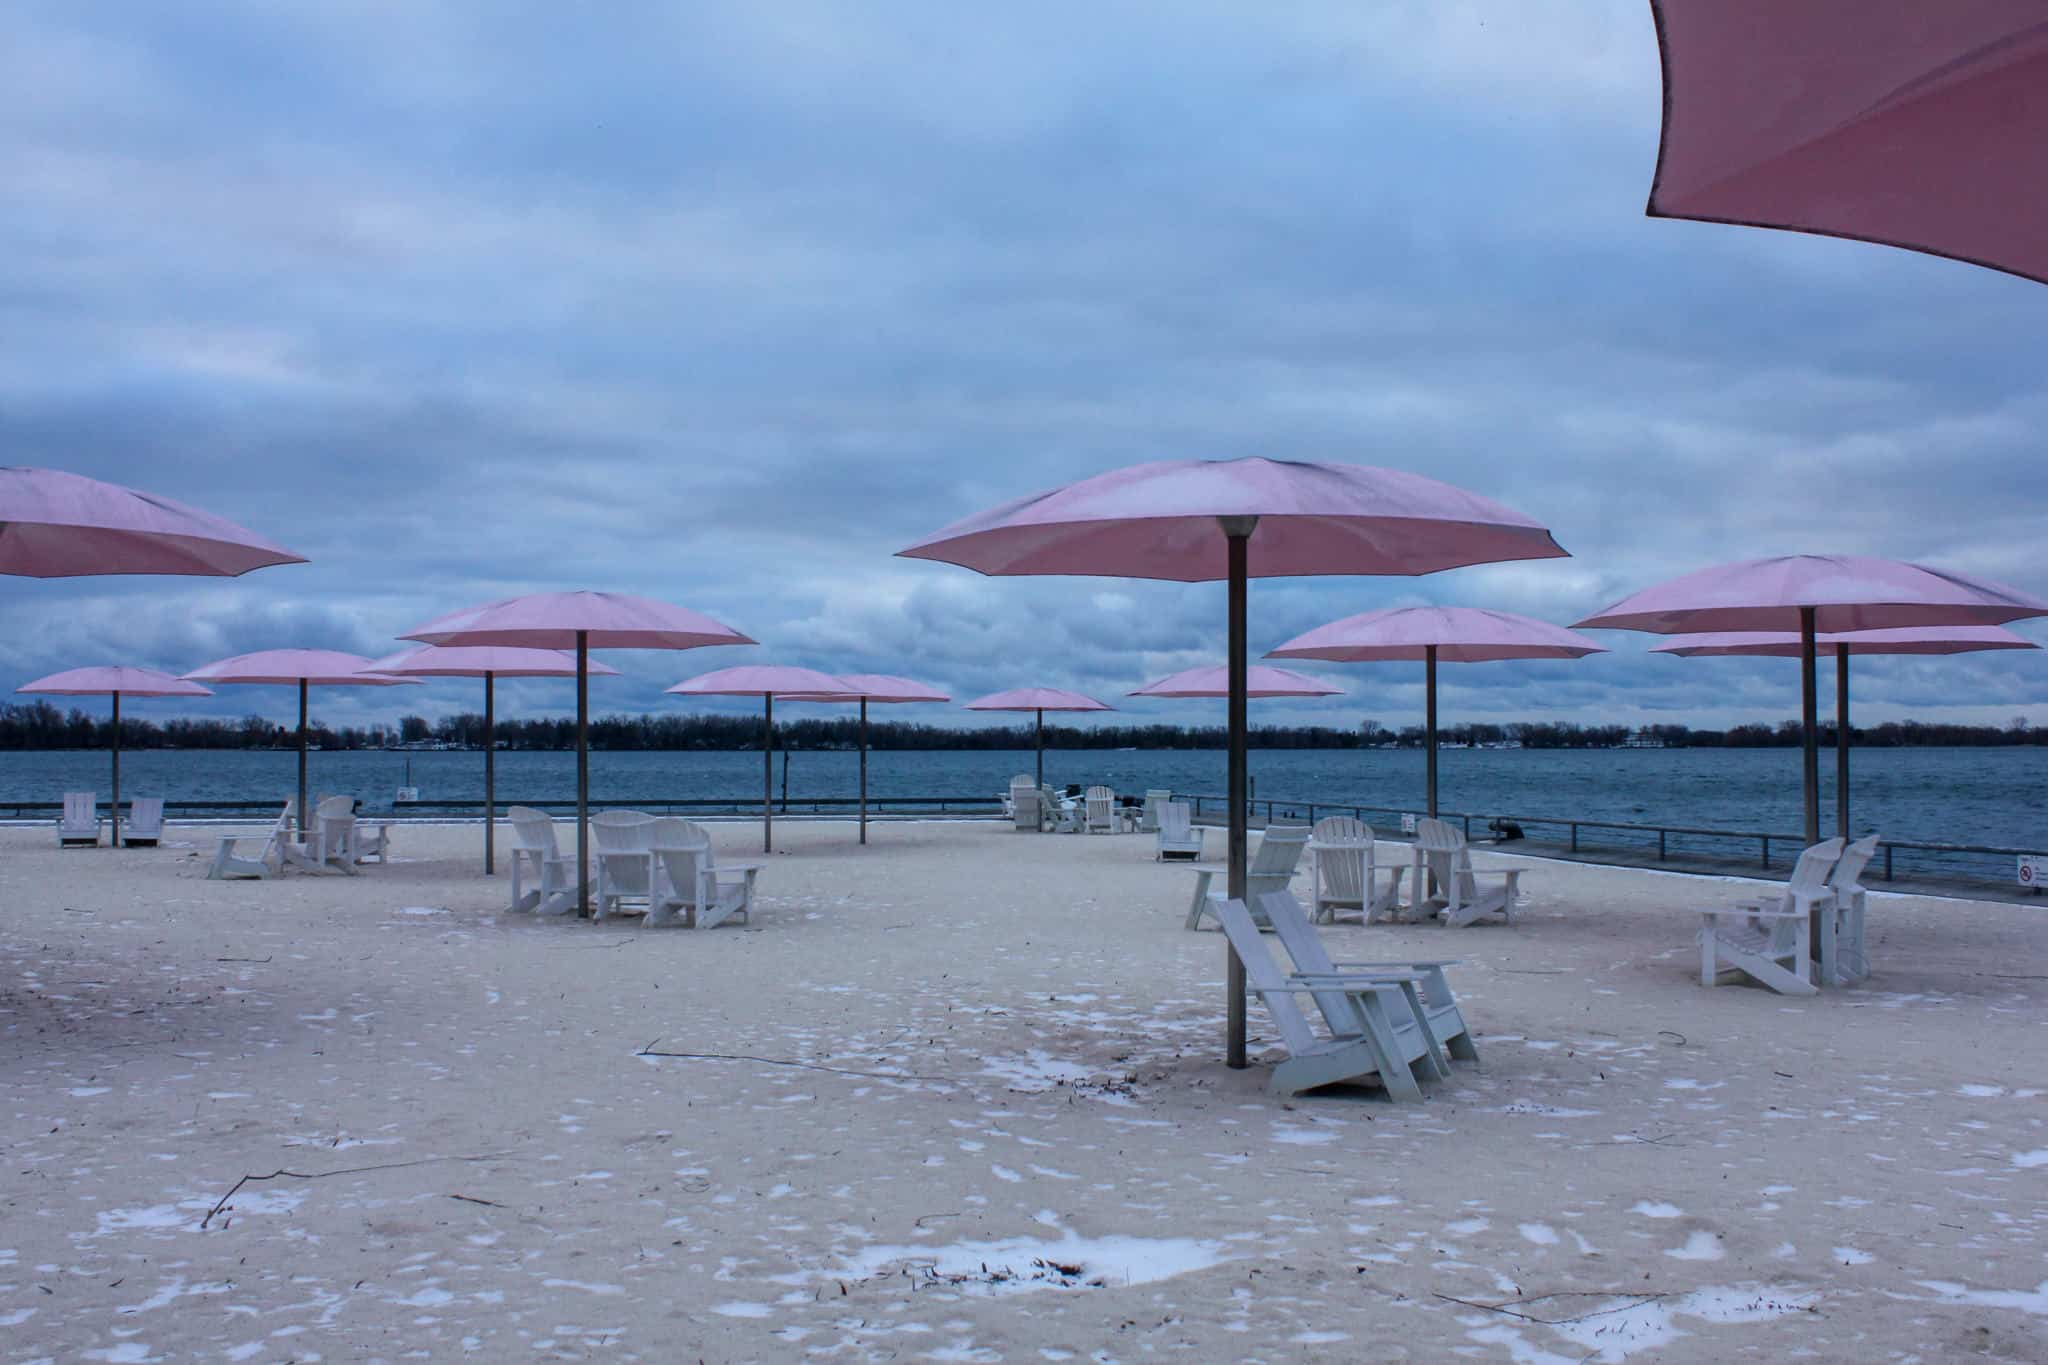 Checking out Sugar Beach is one of the free things to do in Toronto